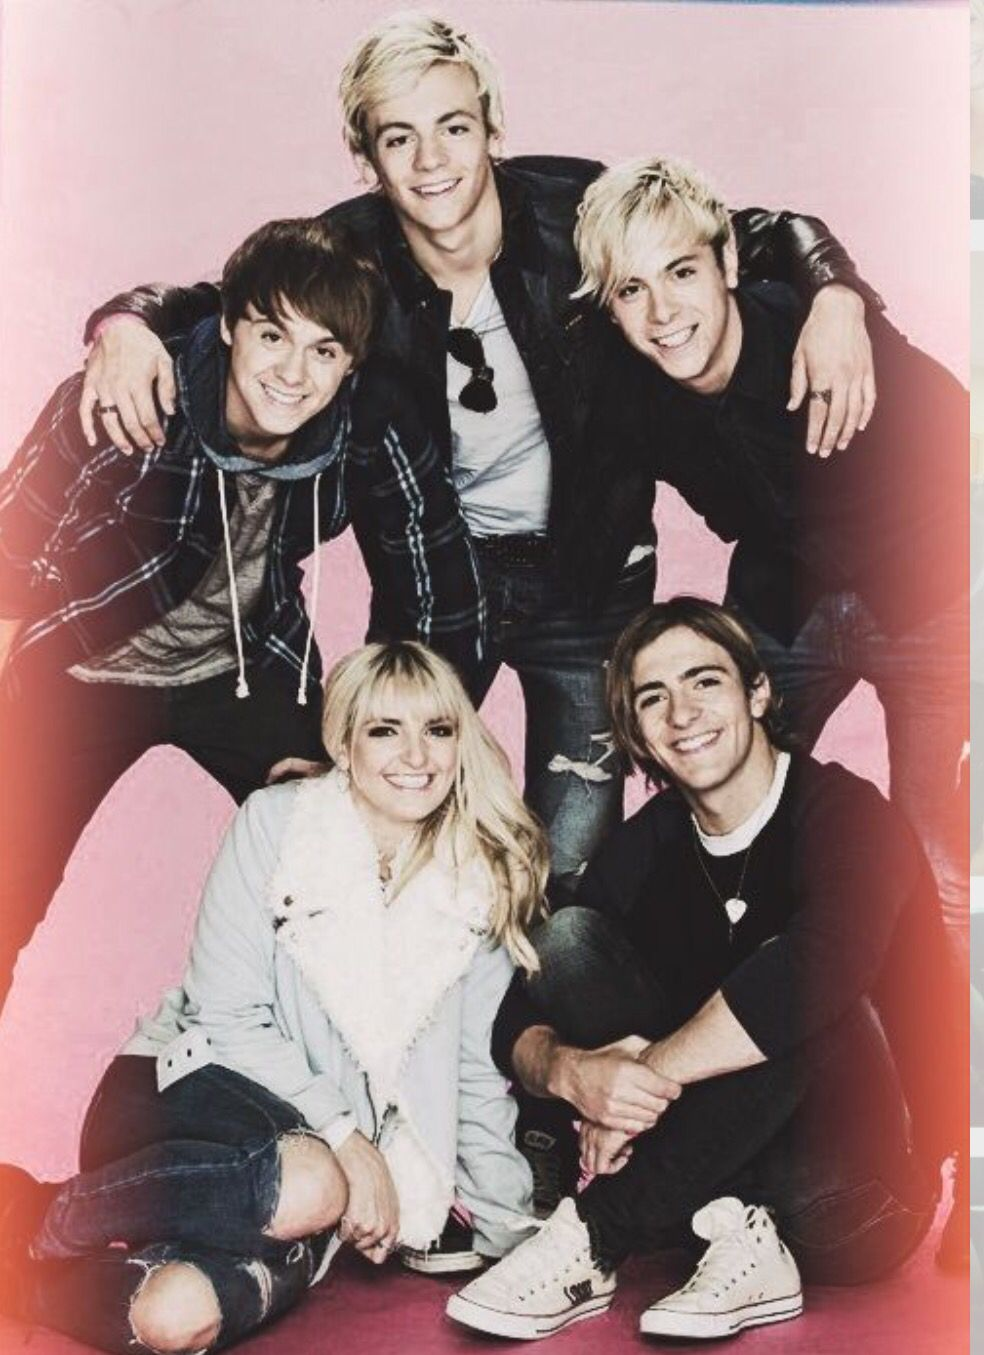 R5 looking cute and Rydel adorable!